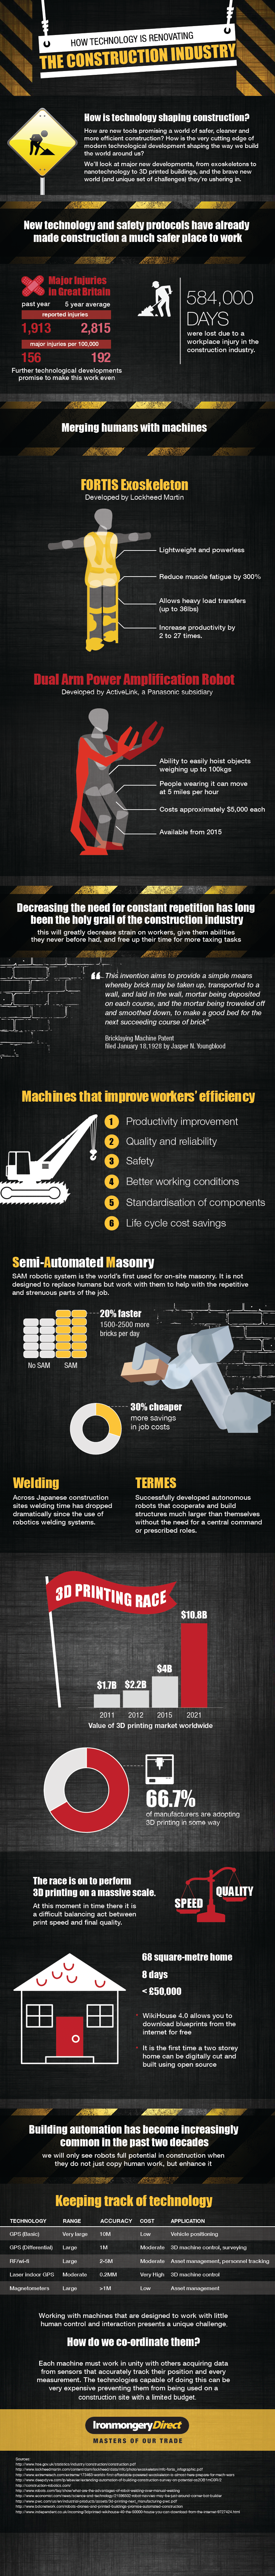 Infographic : How Technology is Renovating the Construction Industry